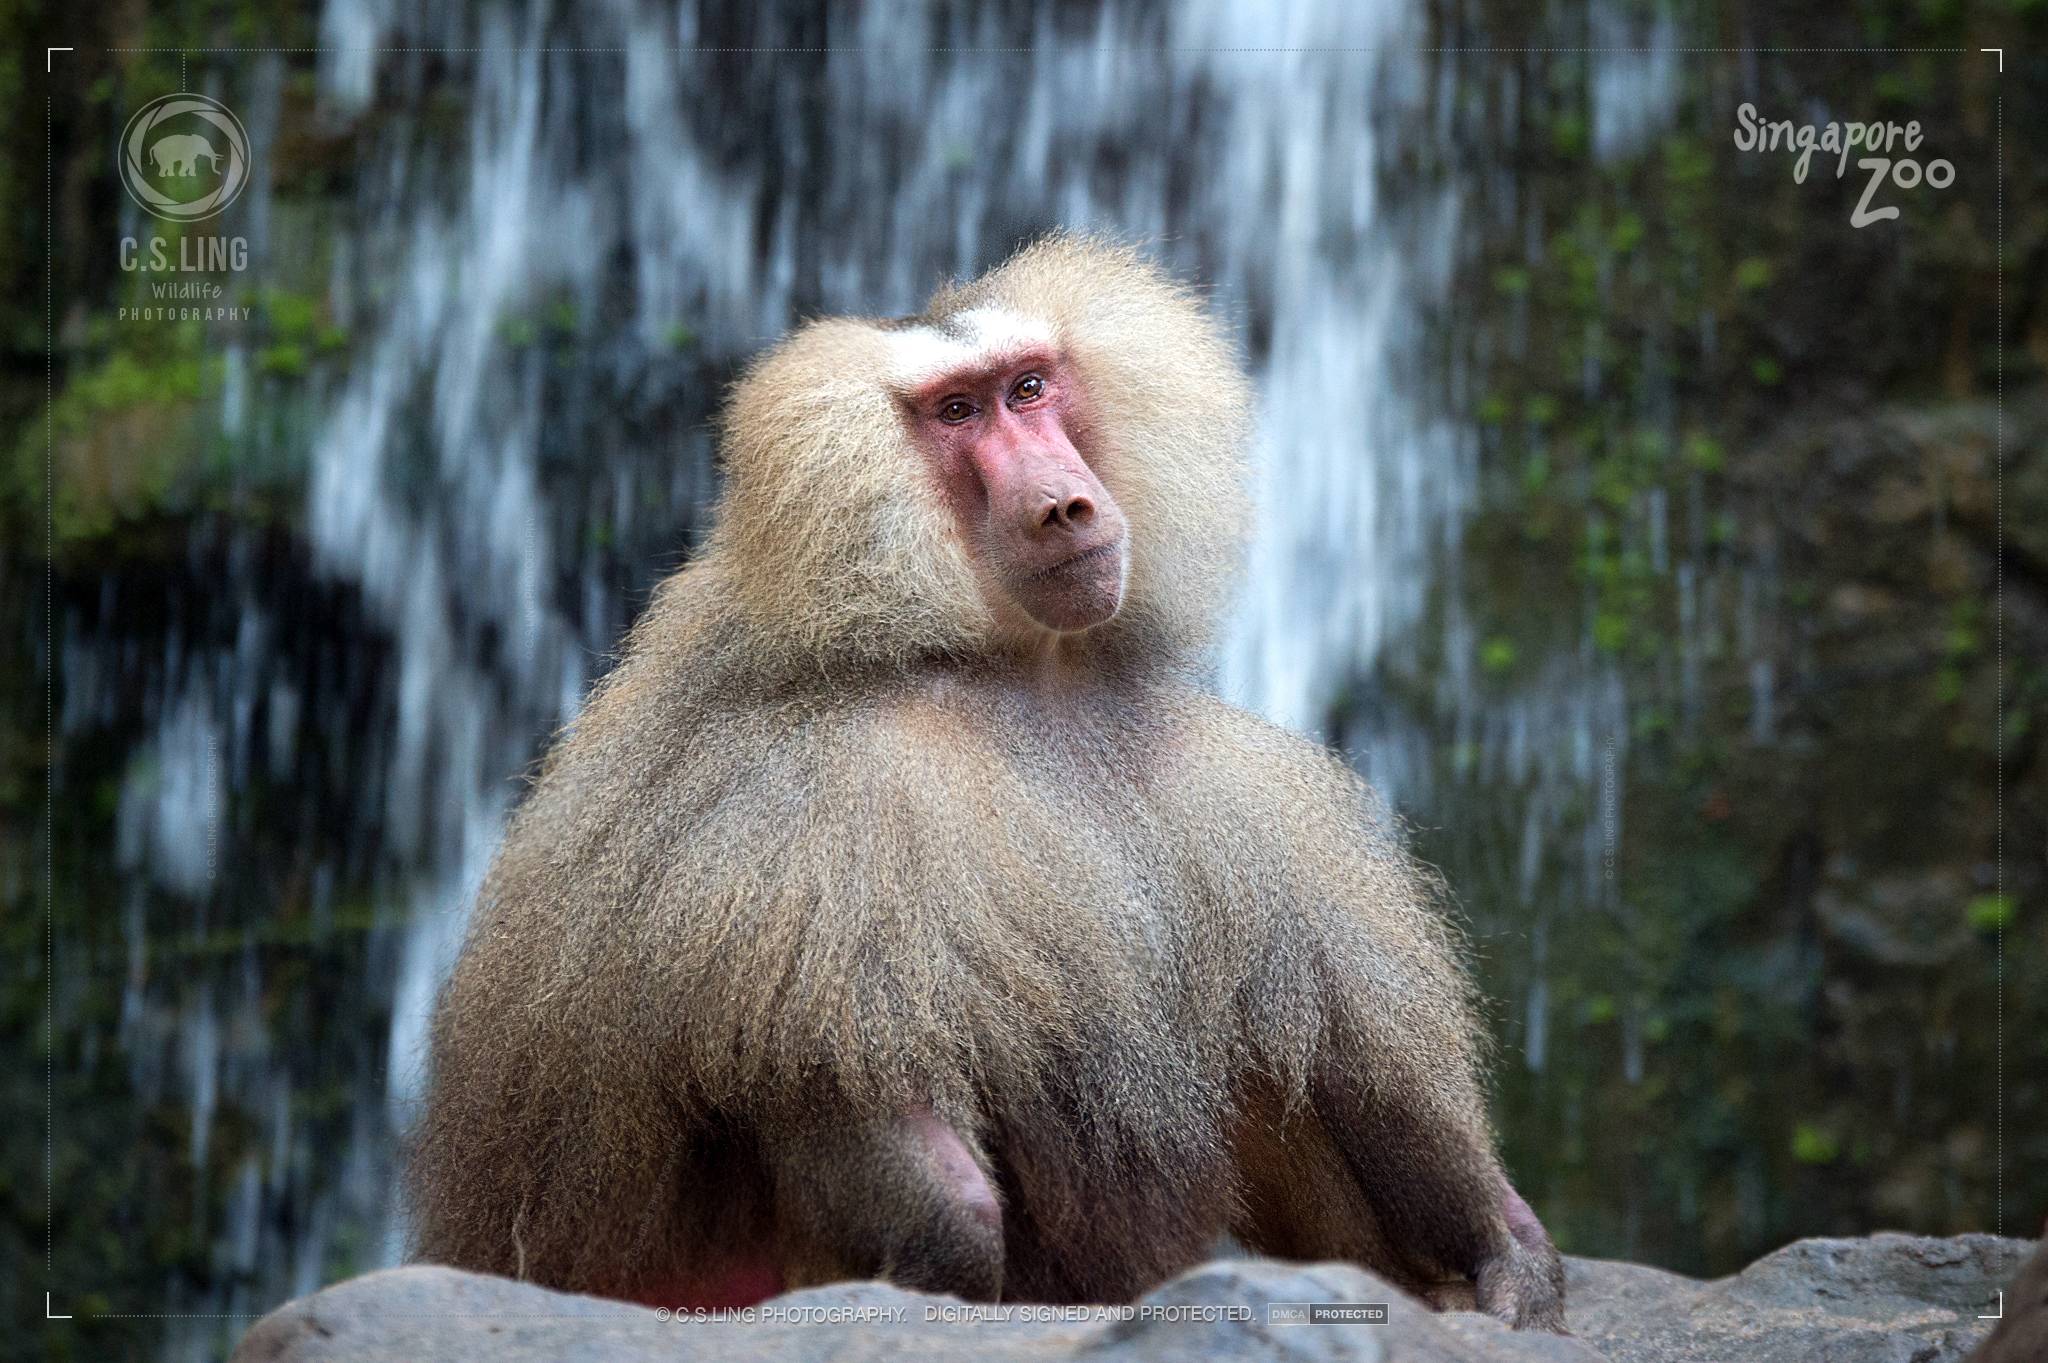 Singapore Zoo Hamadryas Baboon Alpha Male by C.S.Ling